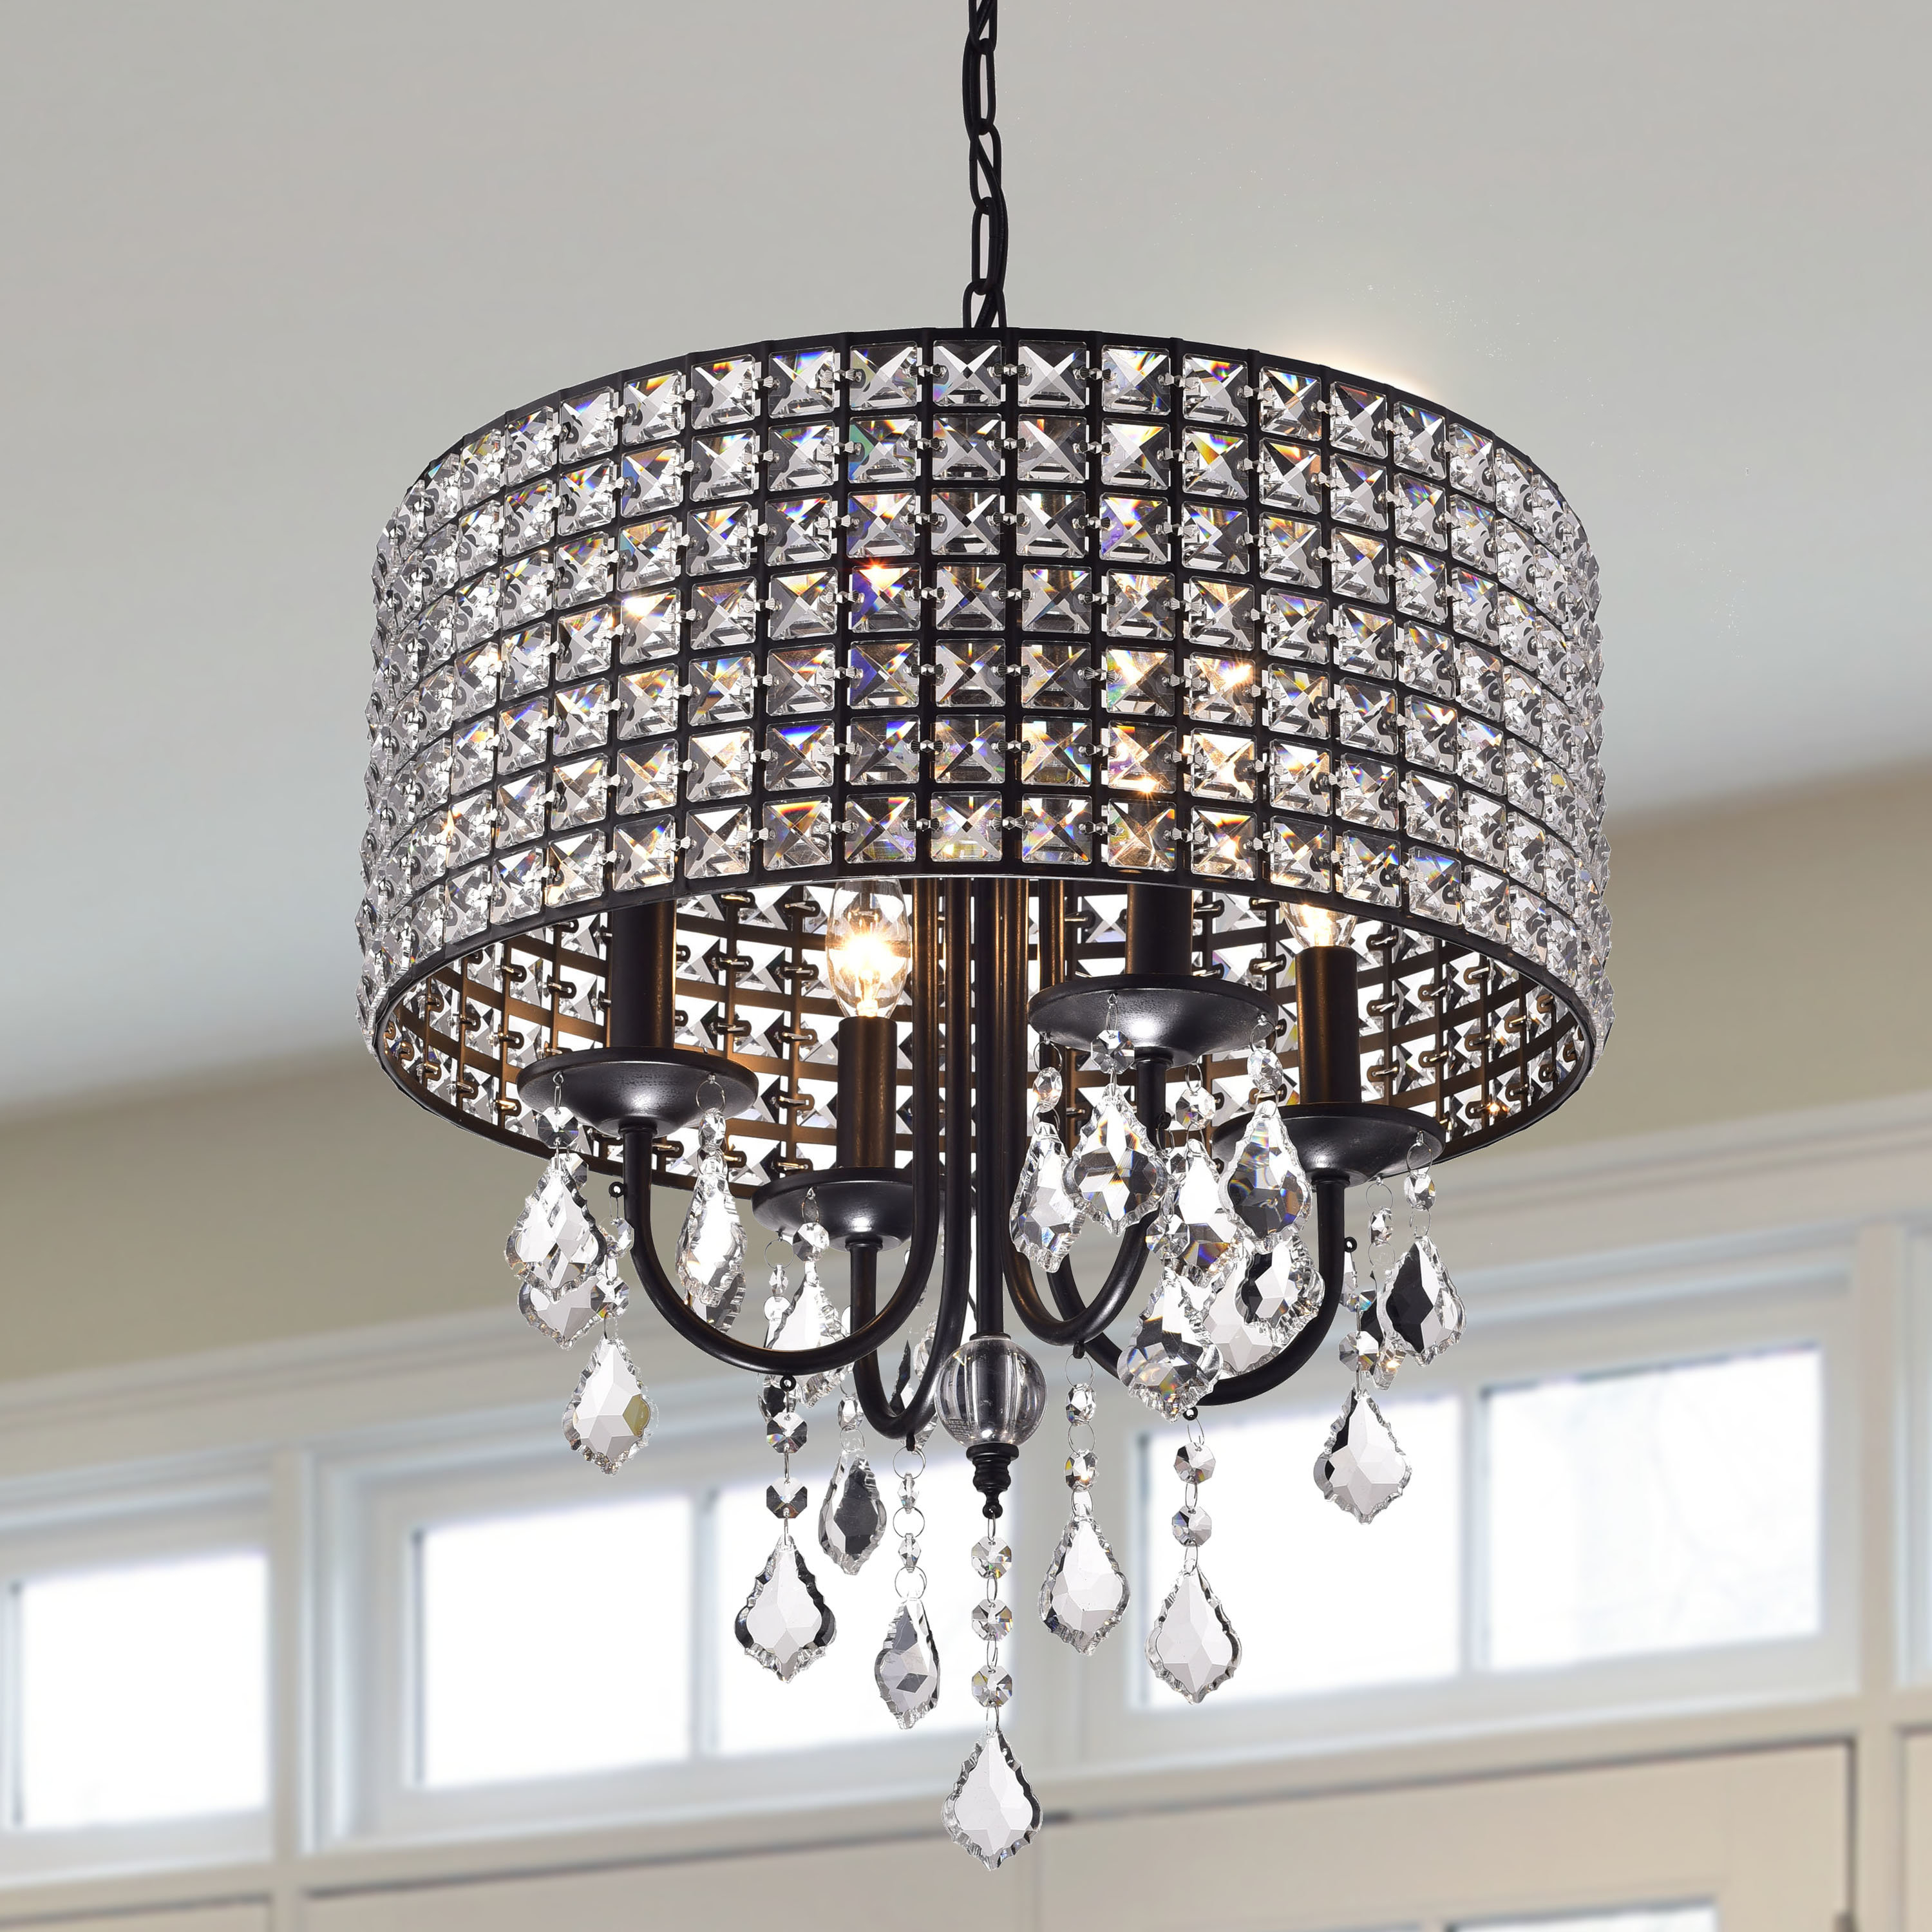 Albano 4 Light Crystal Chandelier With Dirksen 3 Light Single Cylinder Chandeliers (View 22 of 30)